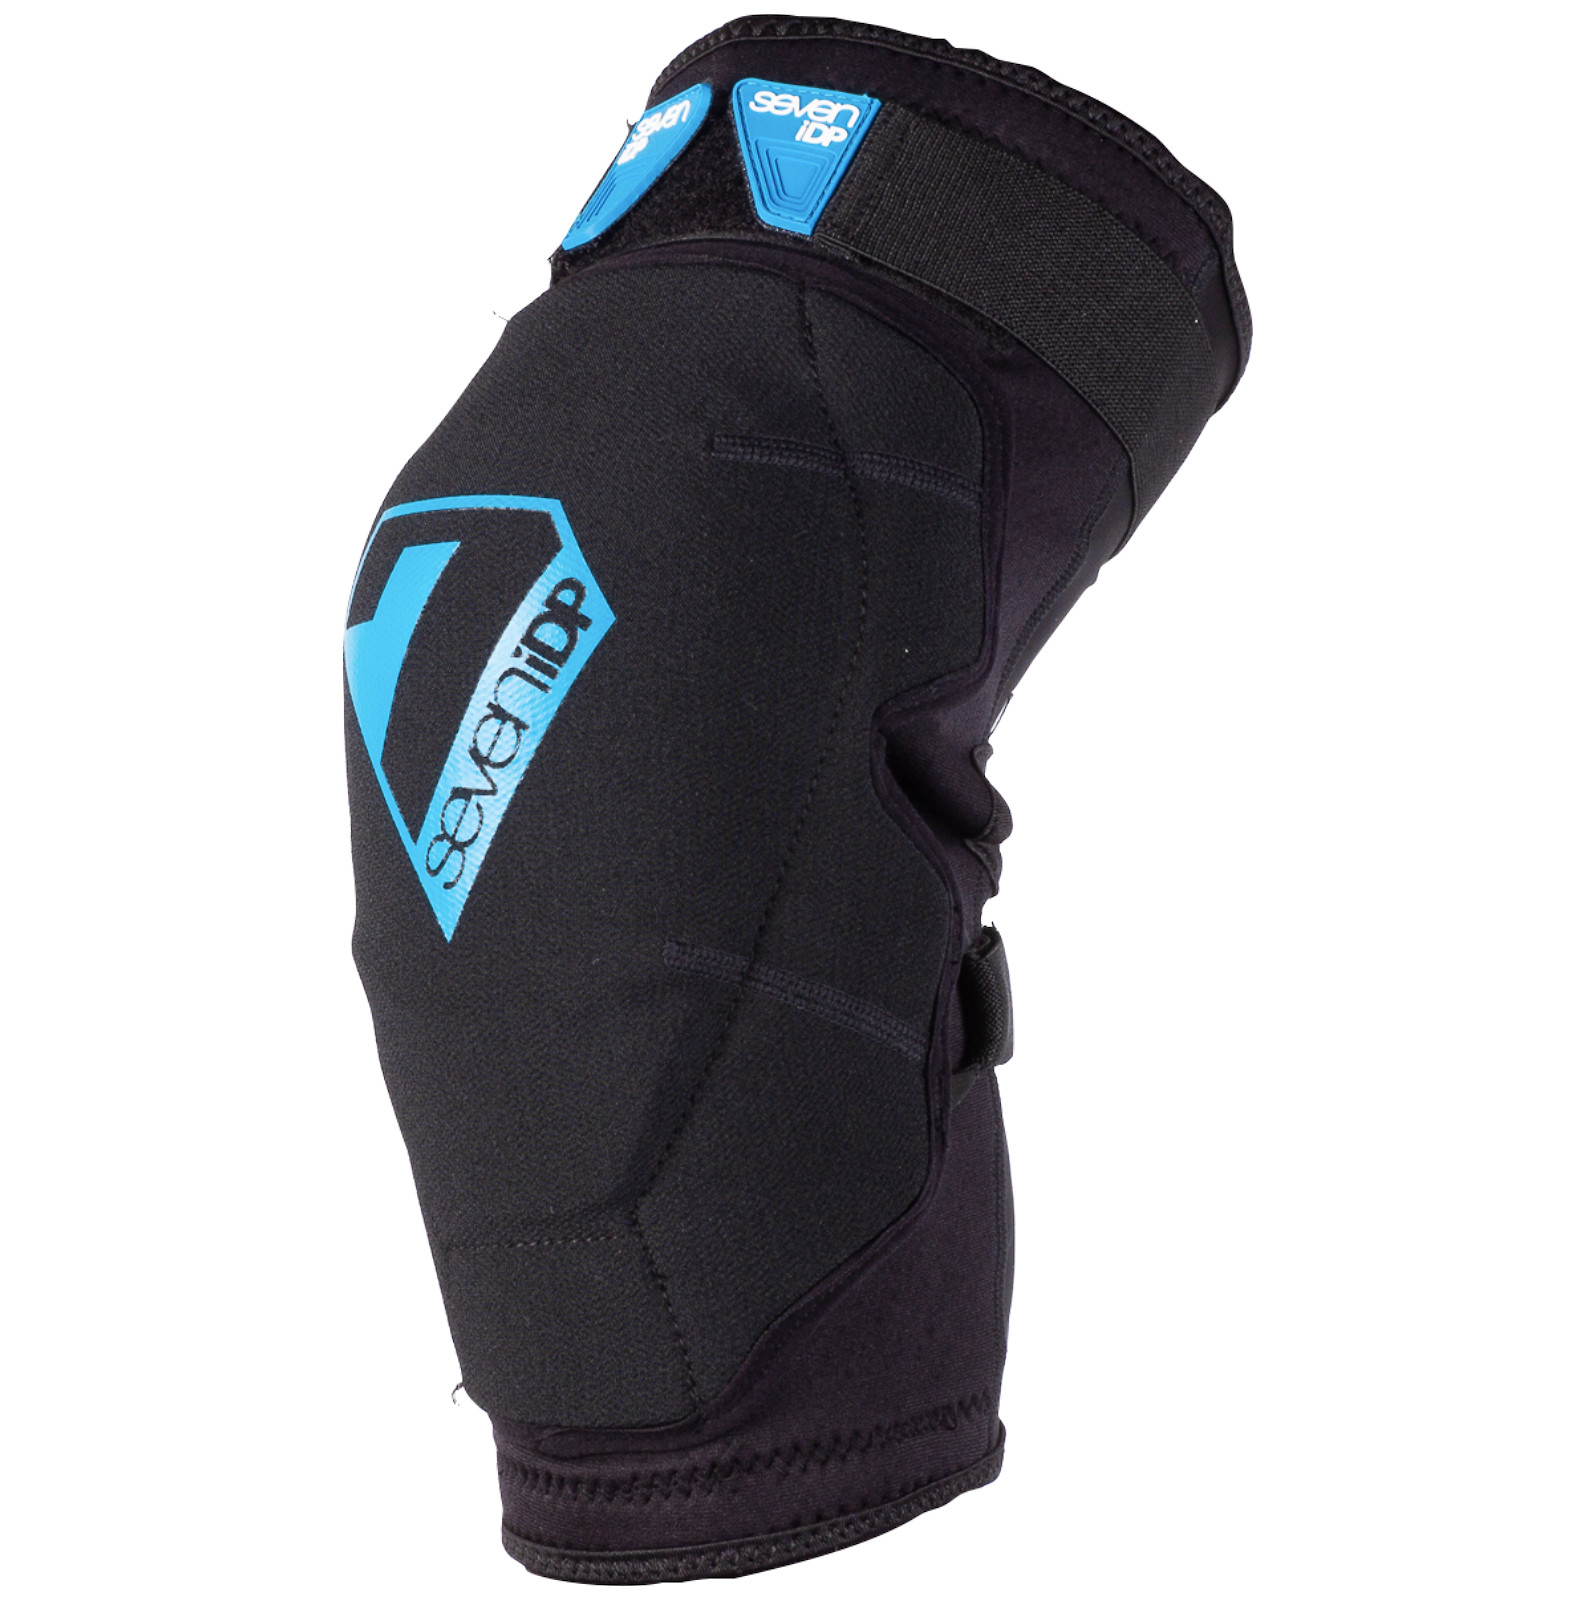 7iDP Flex Knee Pad